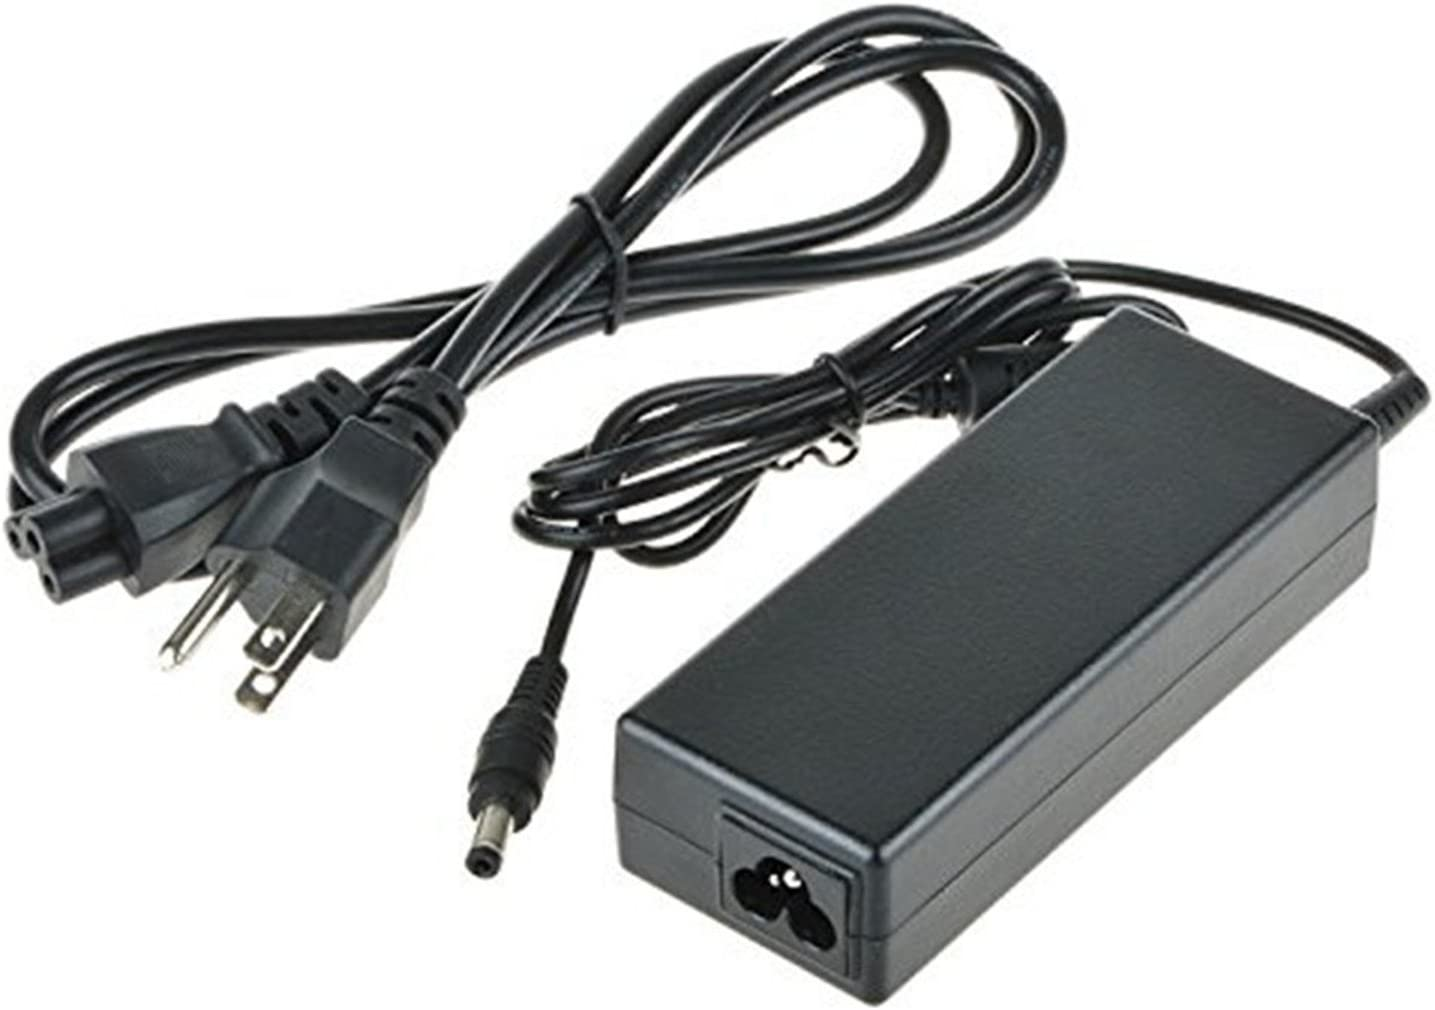 24V AC Adapter for Fujitsu Scanner fi-7160 fi-7180 fi-7260 fi-7280 Power Supply Cord Cable Charger